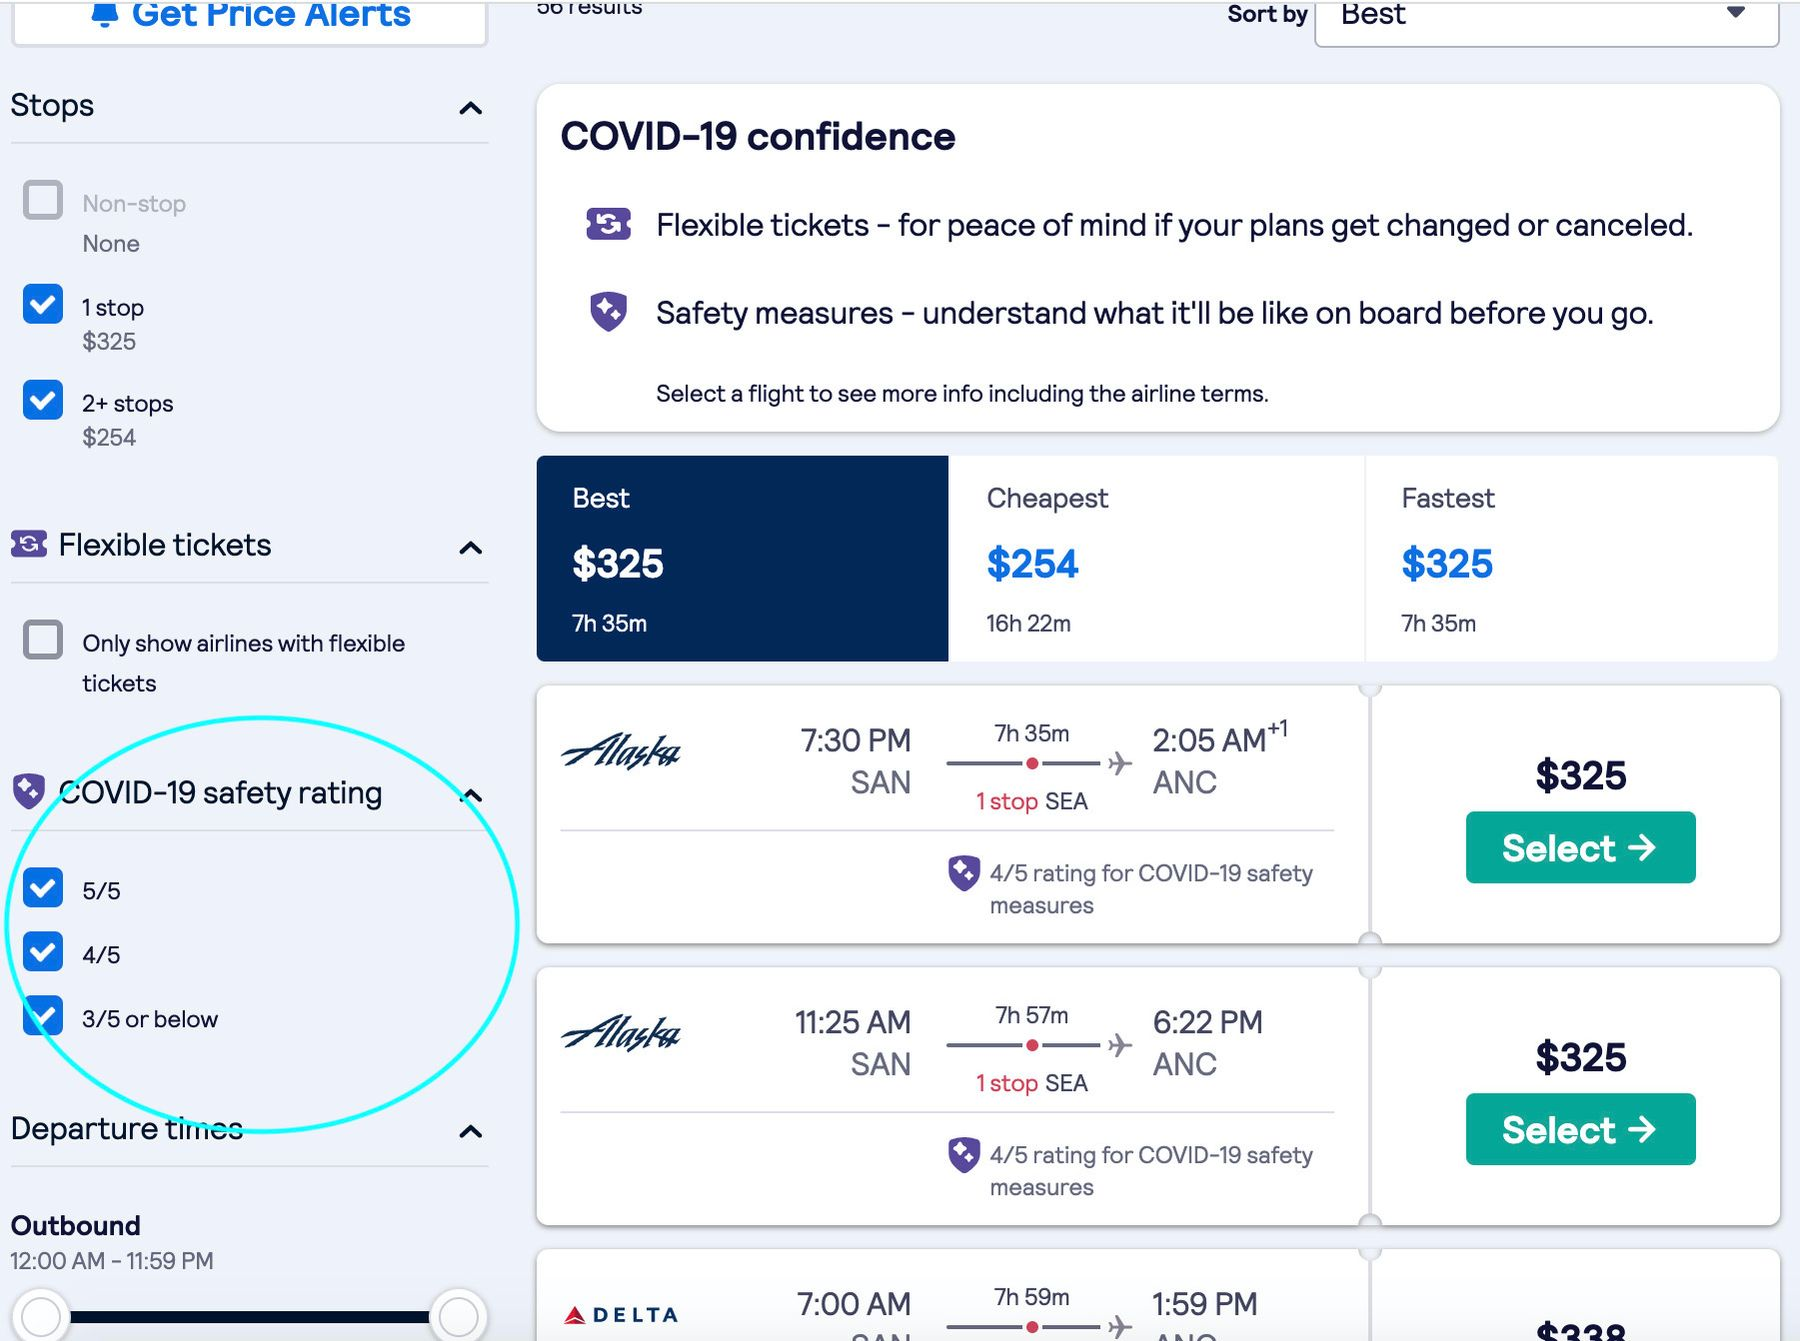 Cathay Pacific flight deals on Skyscanner's website. Keep an eye out for the COVID-19 airline safety rating.